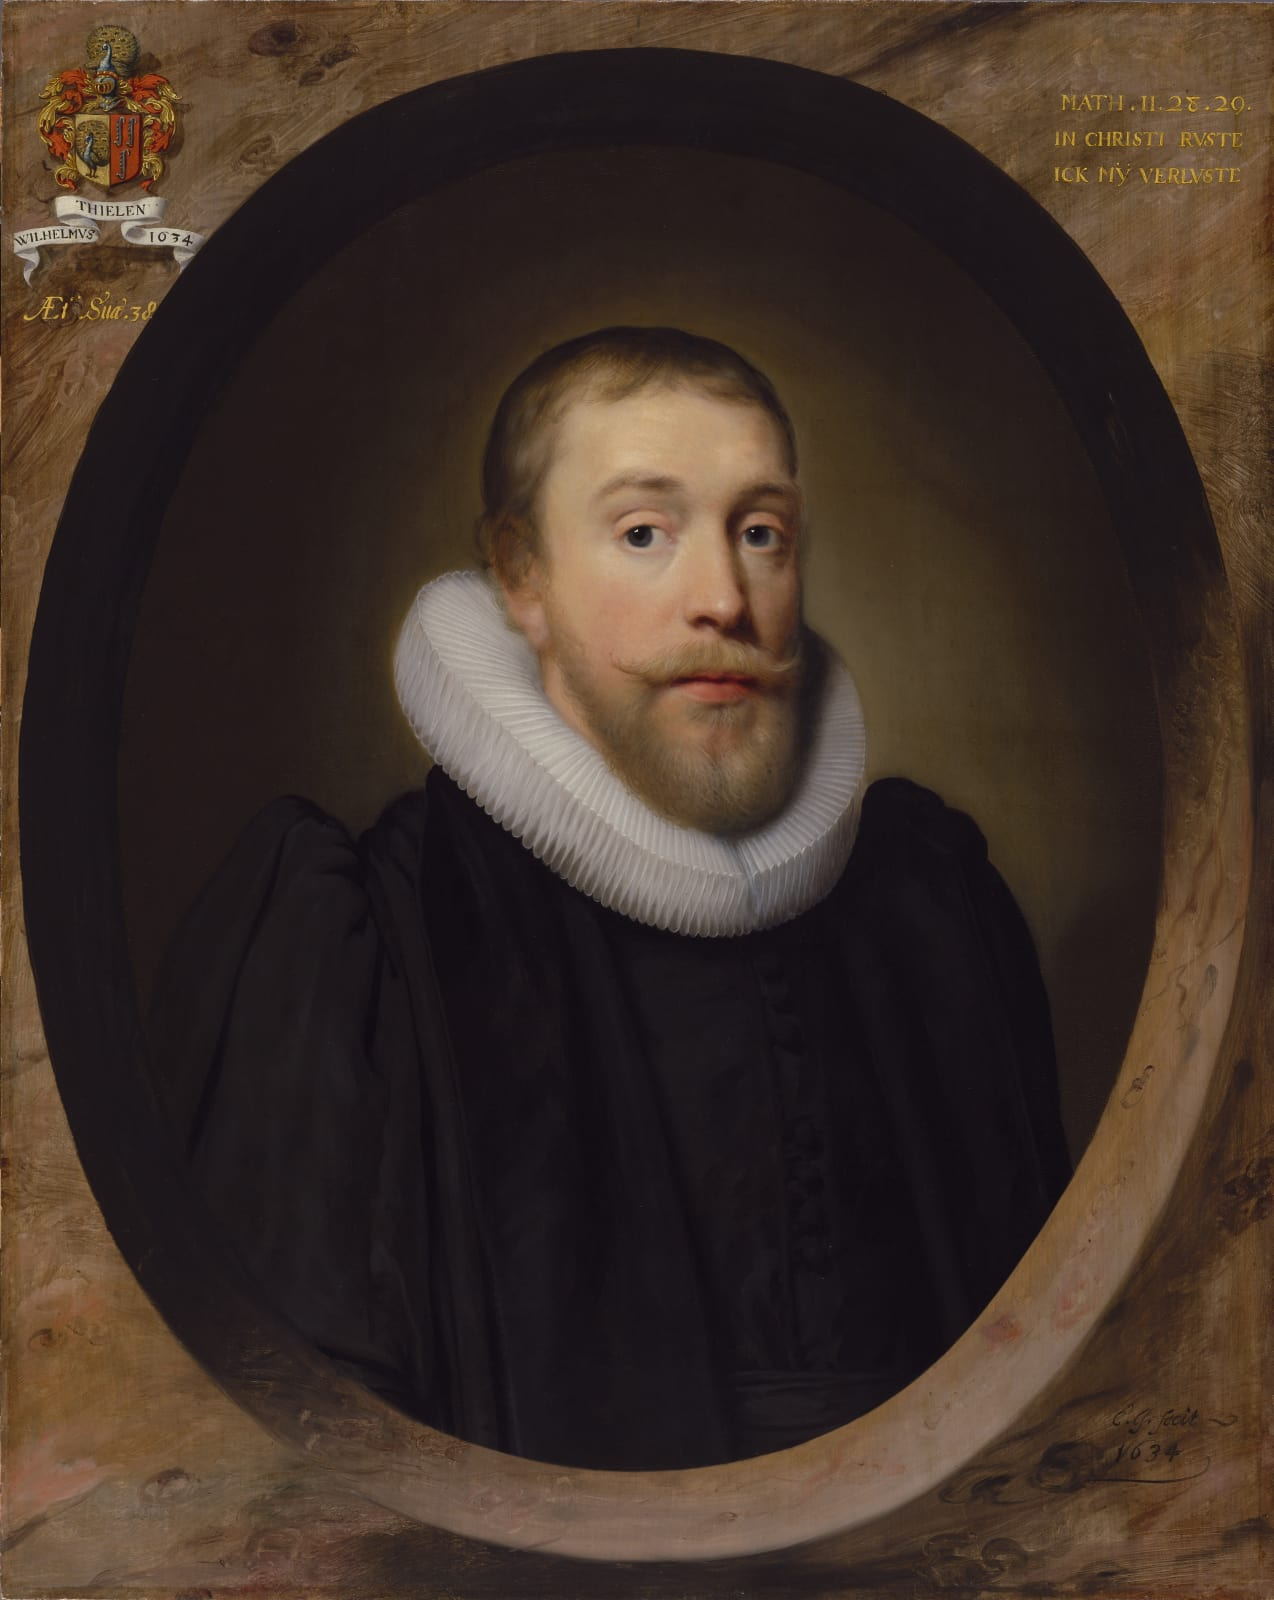 Willem Thielen (1596 – 1638), Reverend Minister of the Reformed Dutch Church of London and his wife Maria de Fraeye (1605 – 1682)